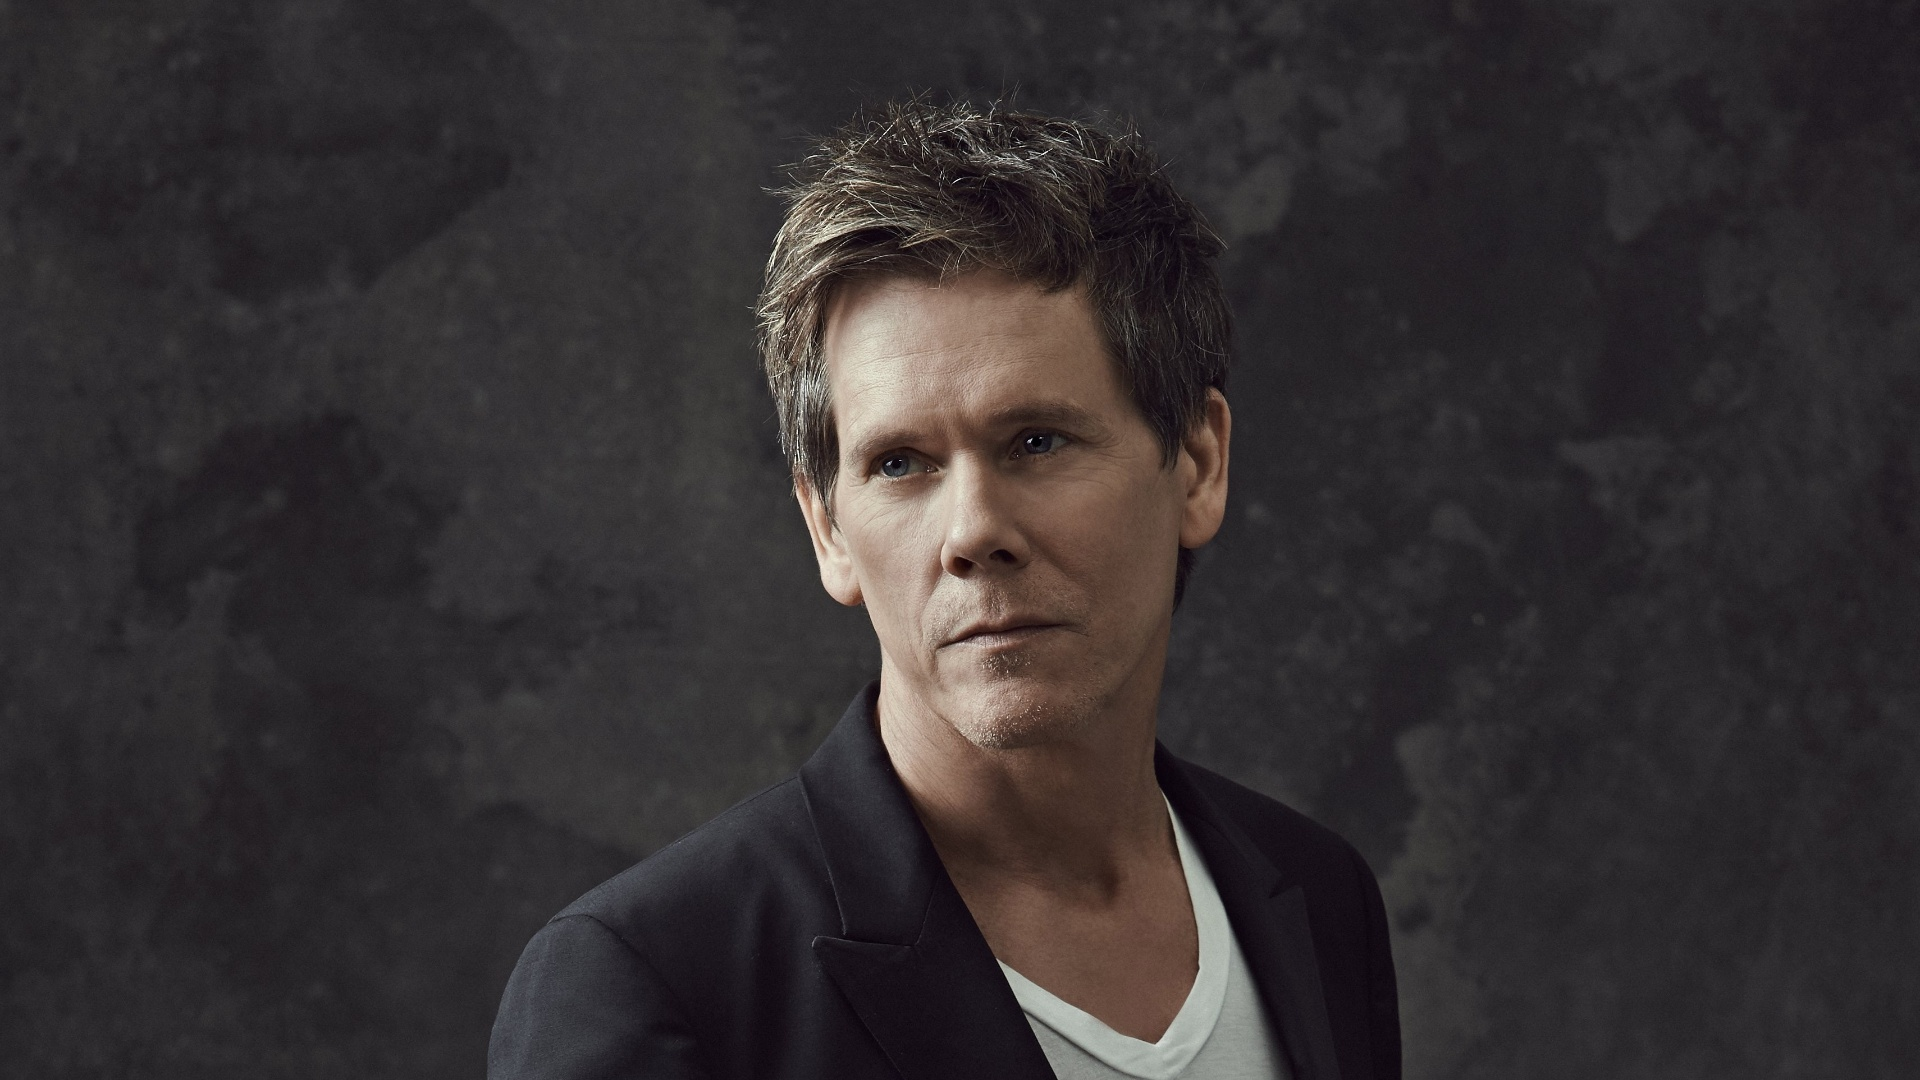 Pictures of Kevin Bacon   Pictures Of Celebrities 1920x1080